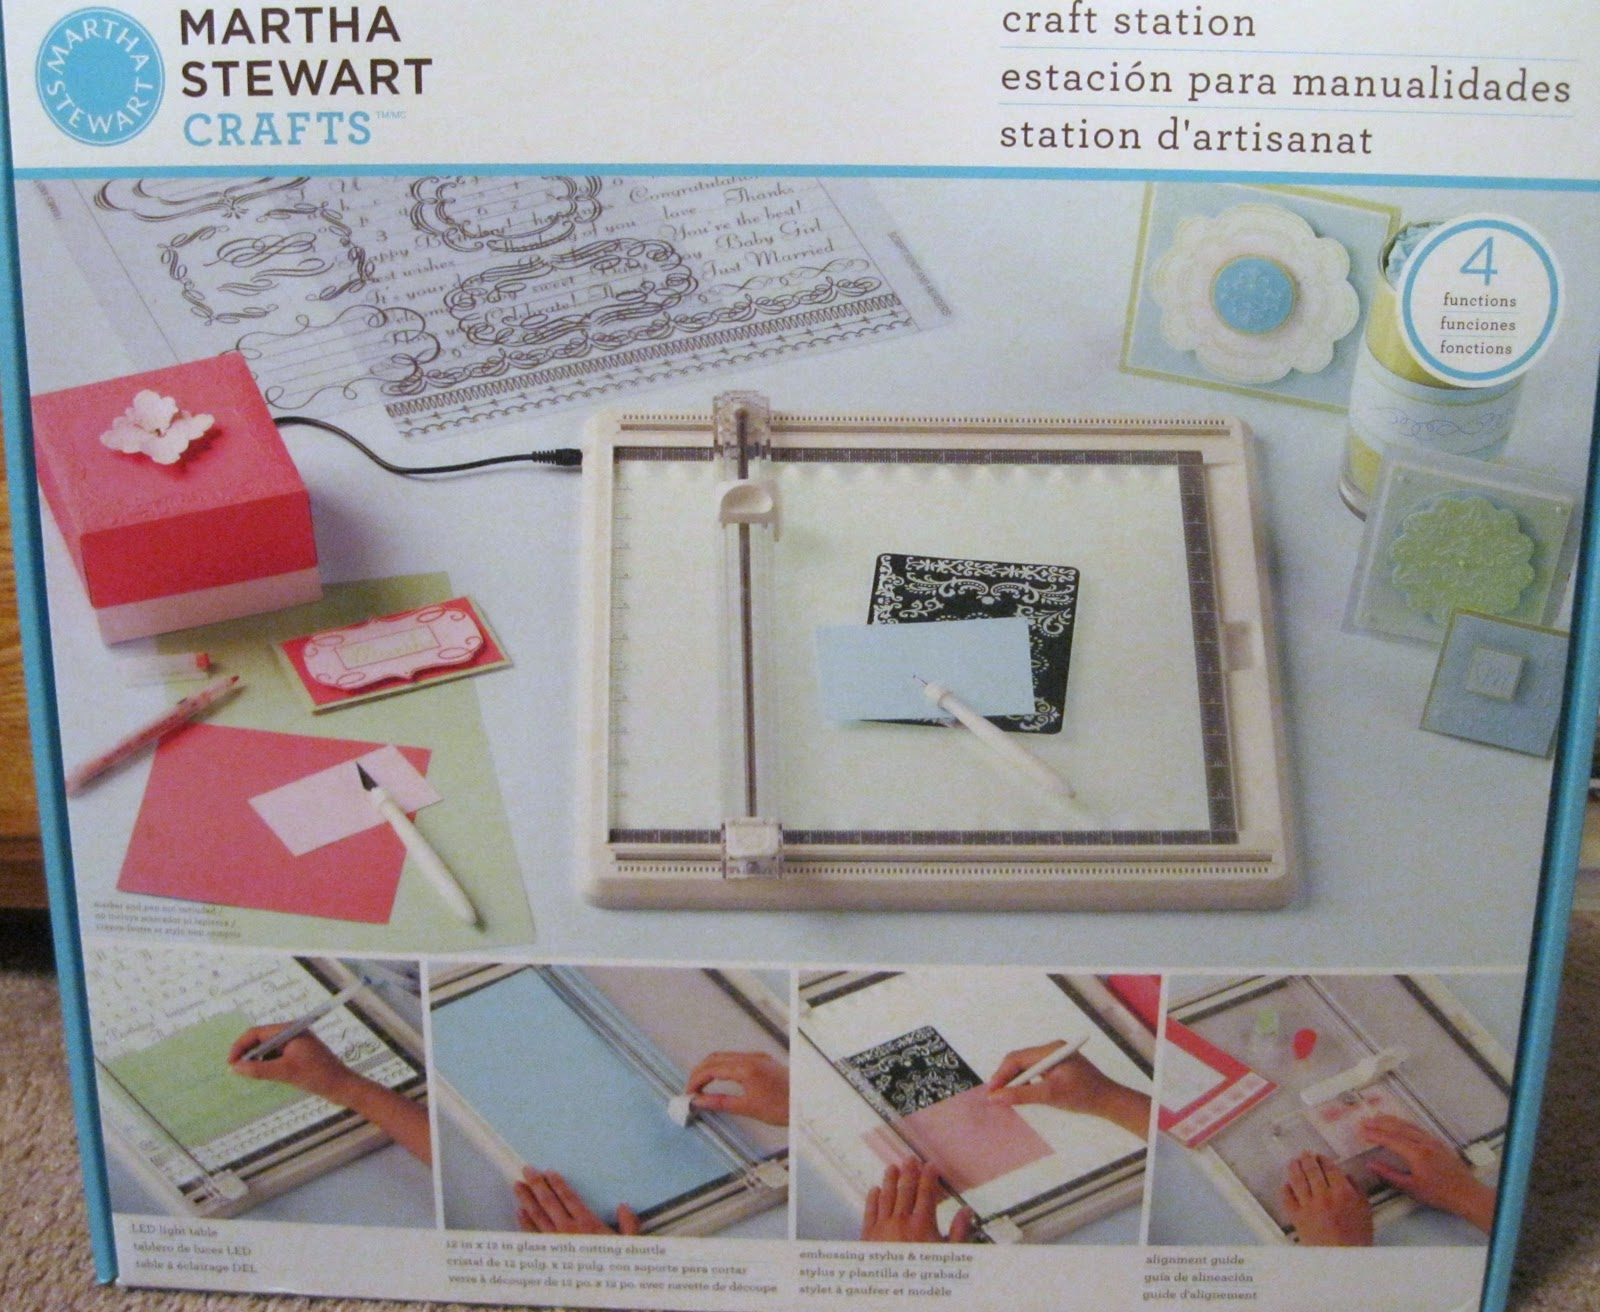 New from Martha Stewart! - Peek-a-Boo Pages - Patterns, Fabric & More!